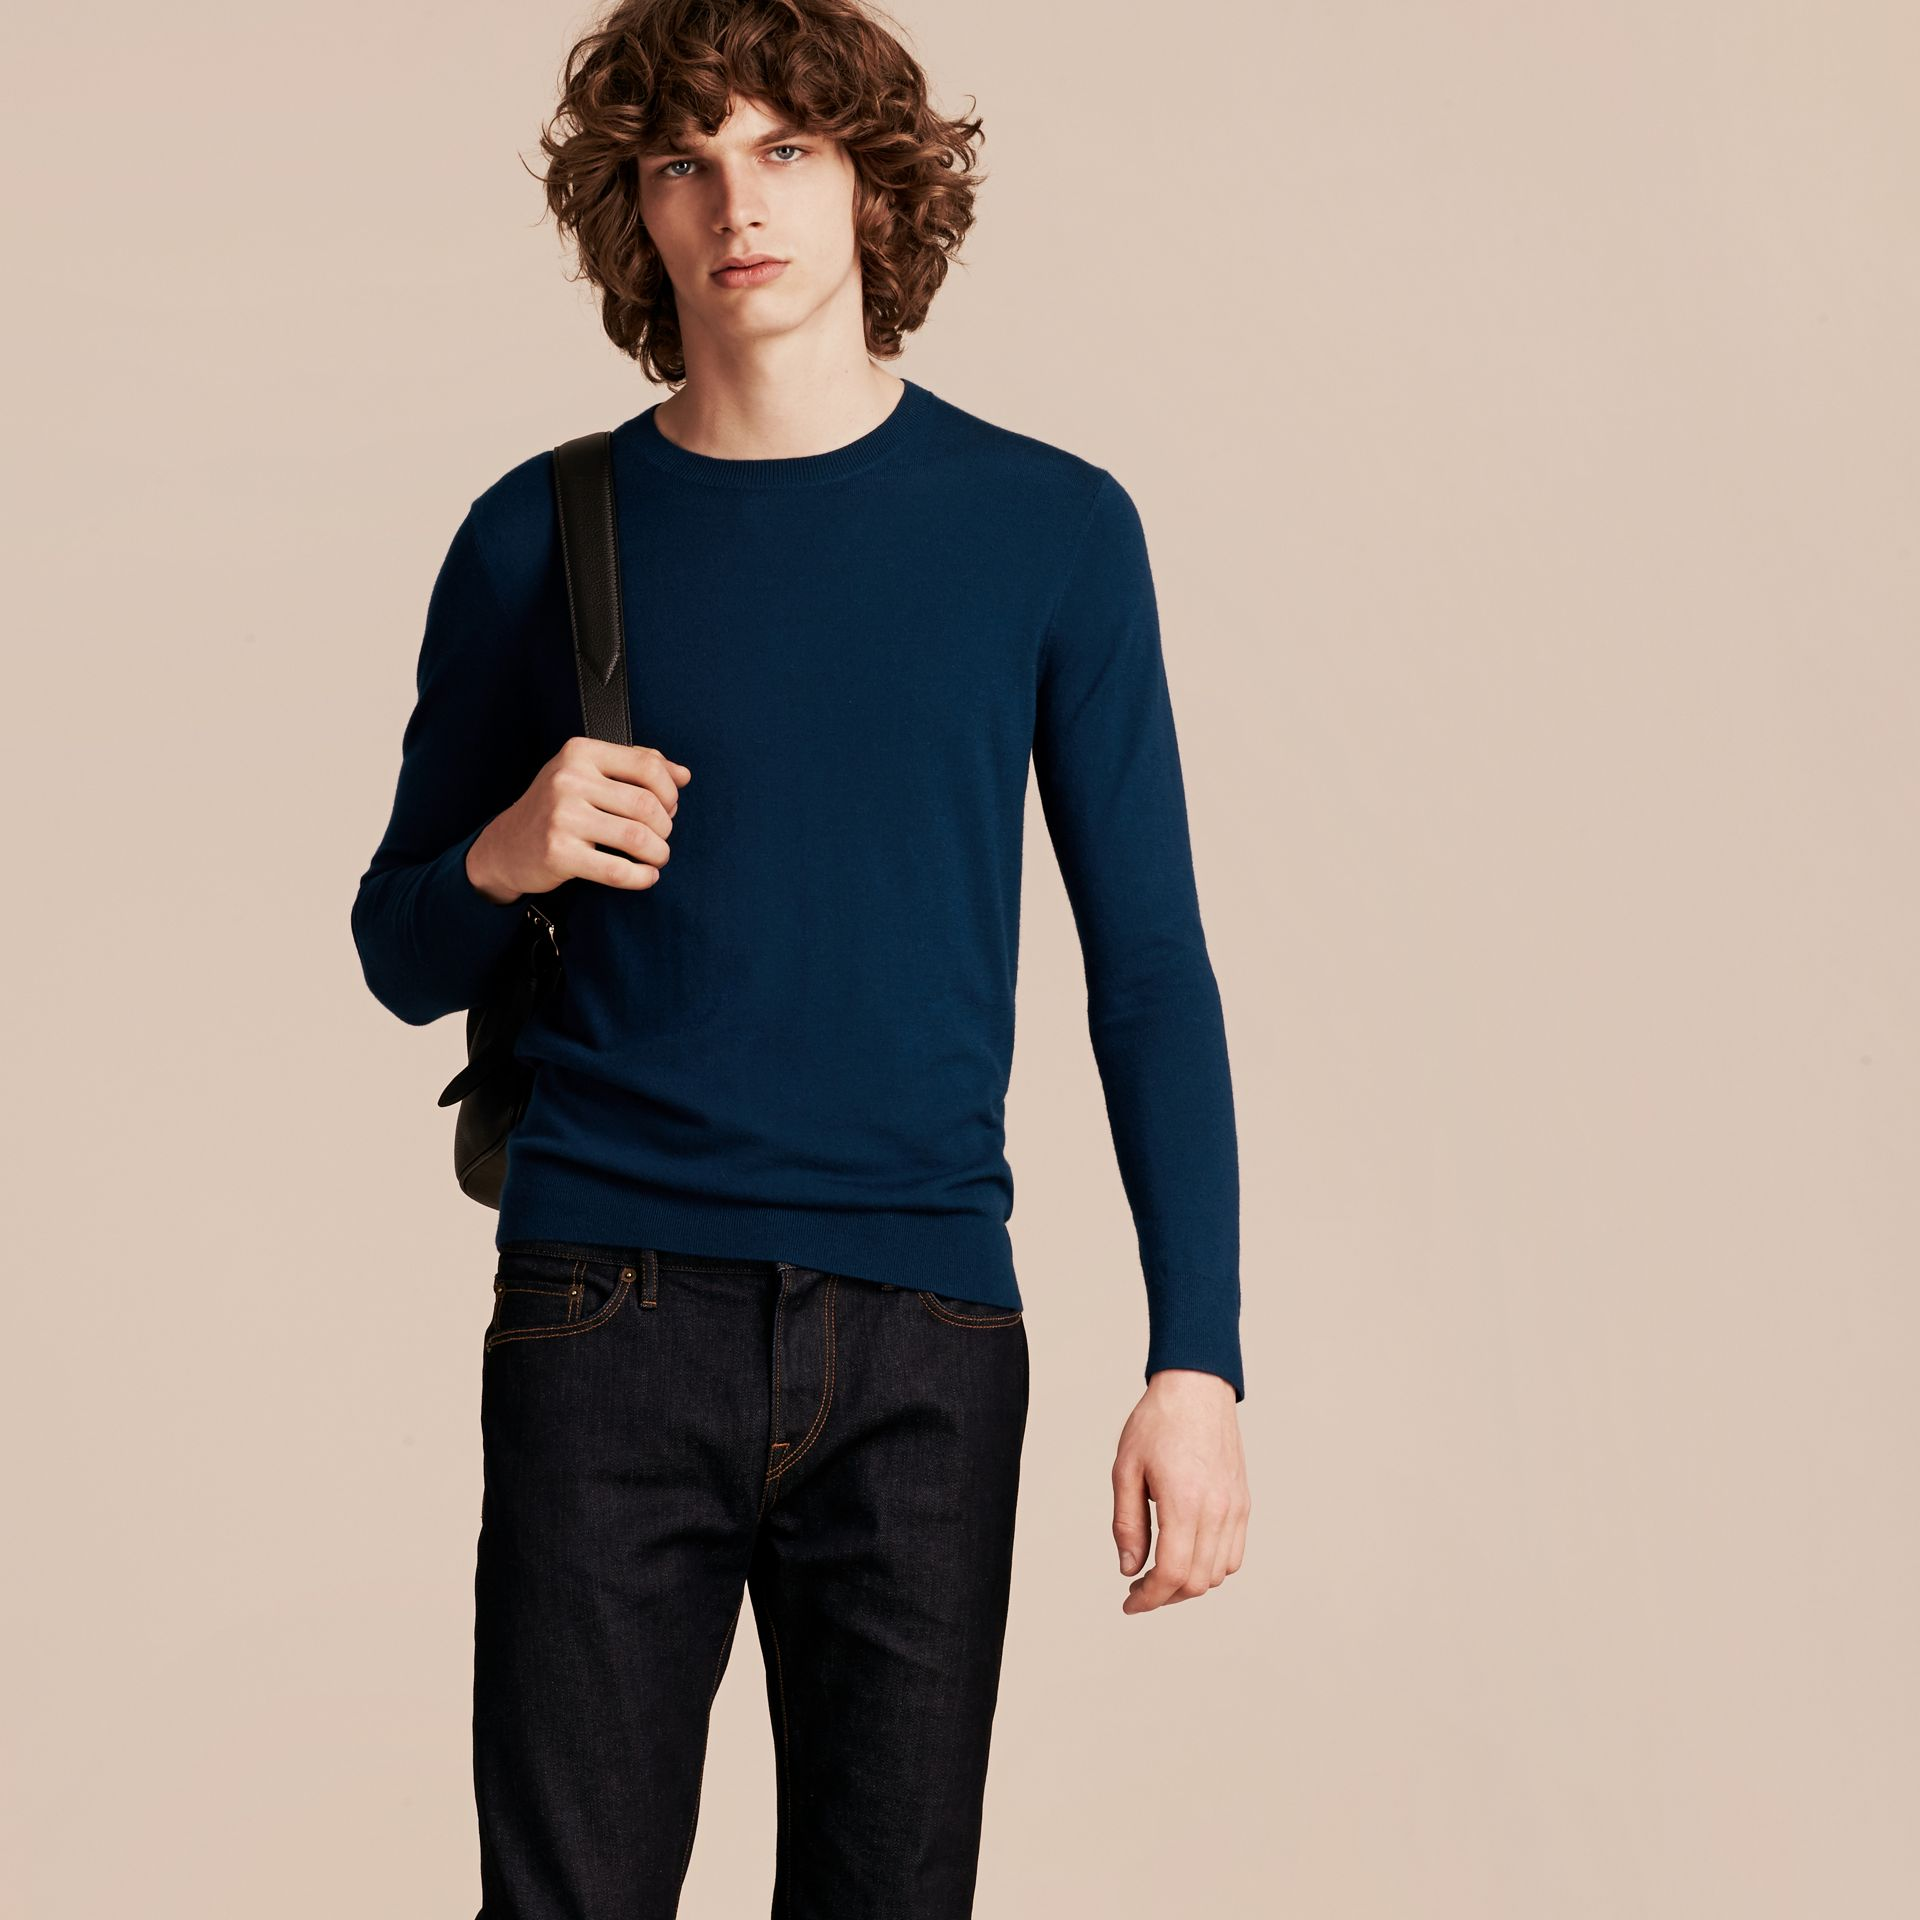 Lightweight Crew Neck Cashmere Sweater with Check Trim in Dark Teal - Men | Burberry - gallery image 6